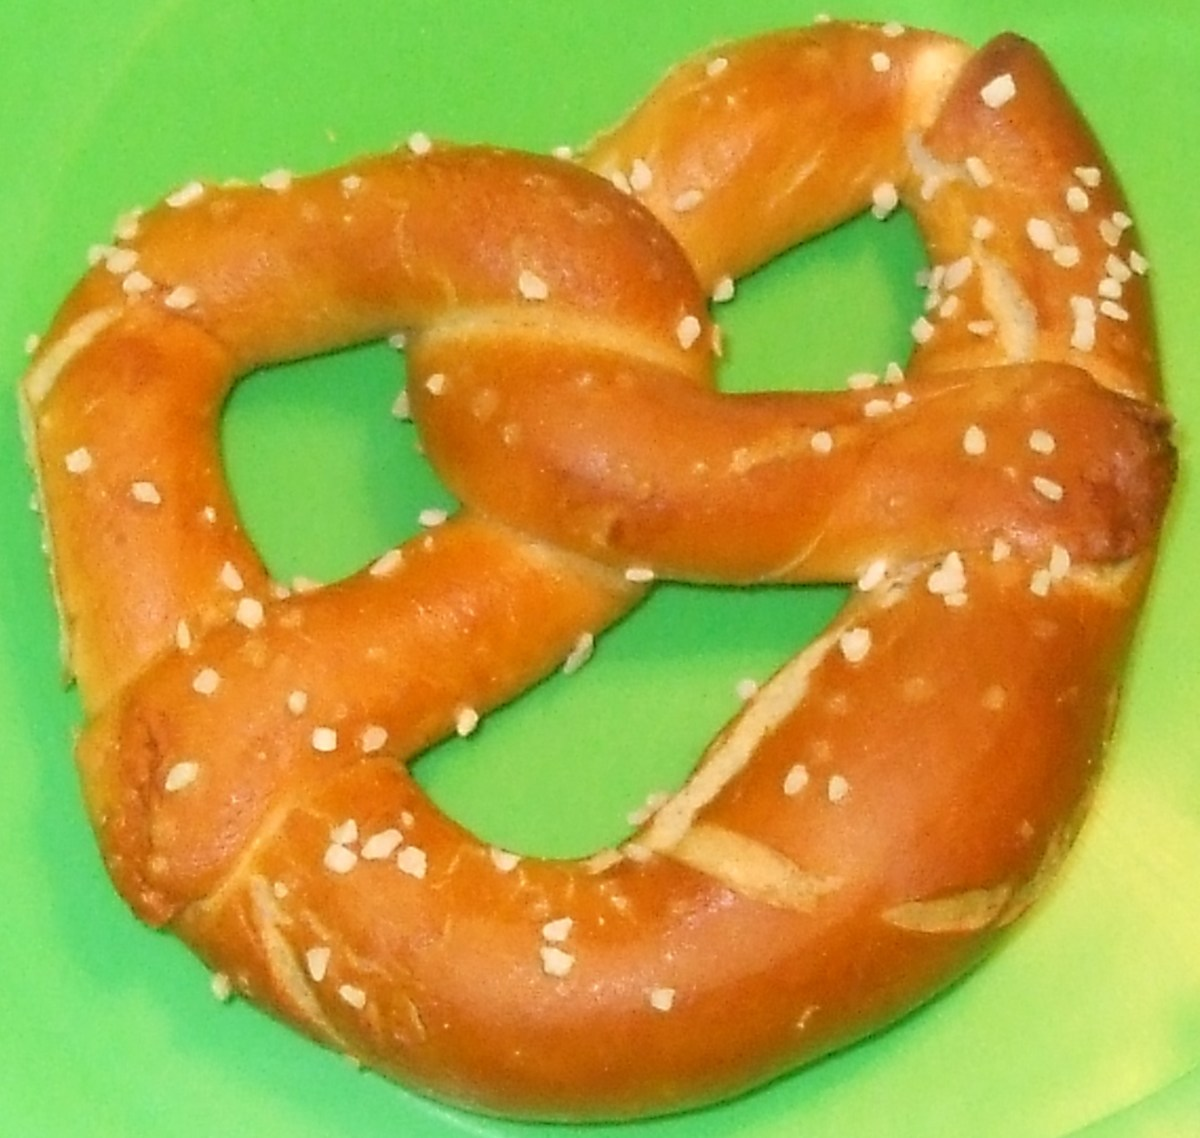 A single beautiful hard beer pretzel from Shuey's